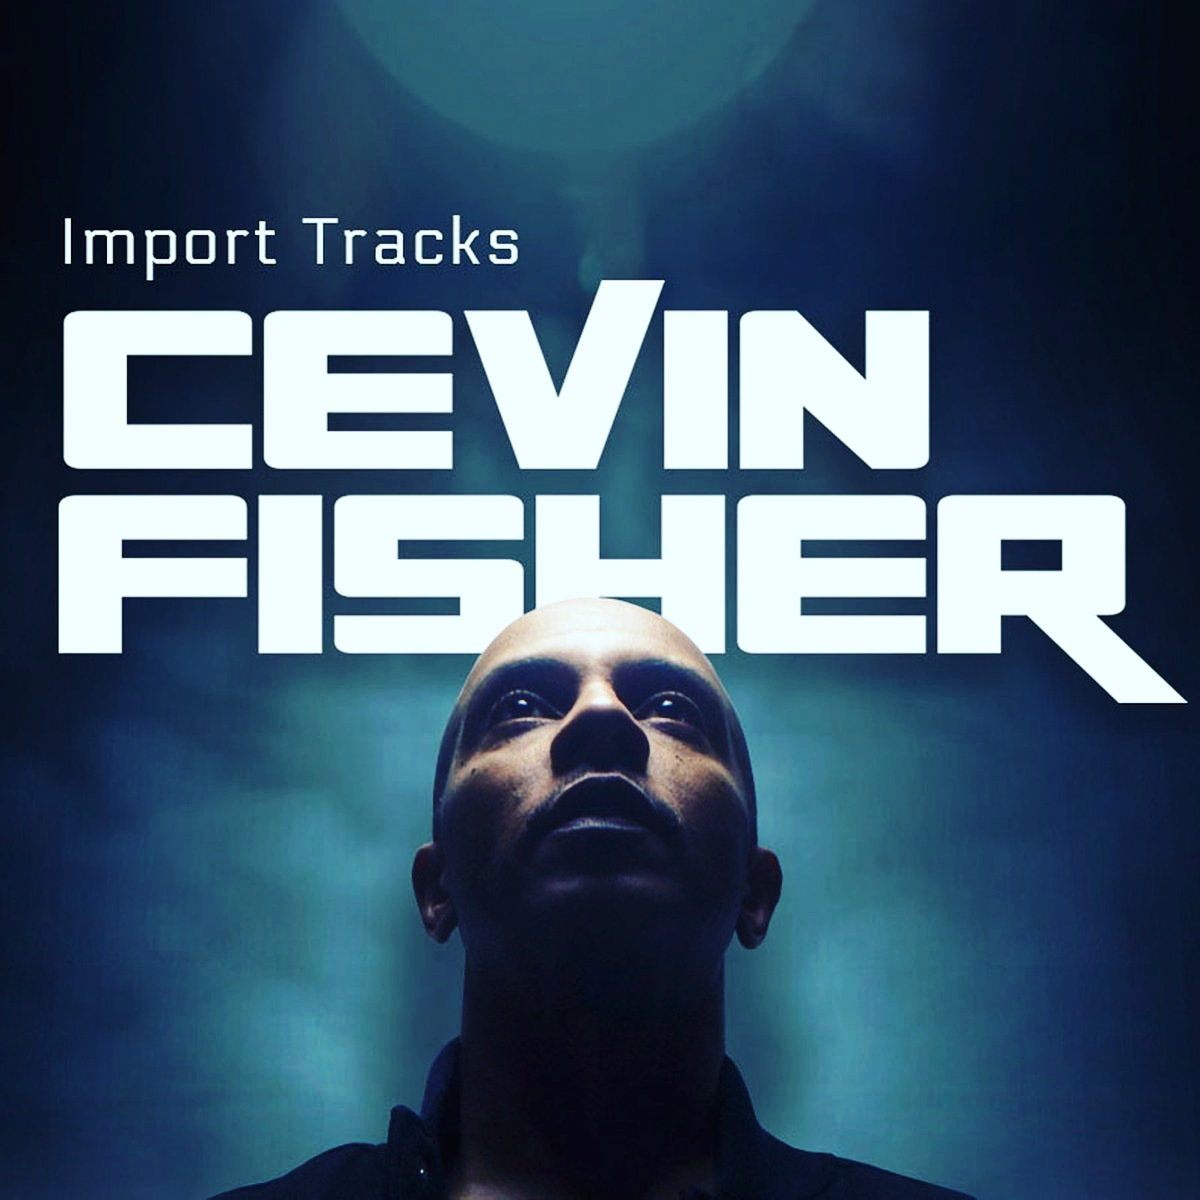 🛑LIVE NOW @cevinfisher import tracks radio show listin live online at  http://www.trueradiocork.com or on 87.8fm 😛 hope everyone is having a good SUNDAY! Let us know!! what you up to? #EDM #Dance #radioshow